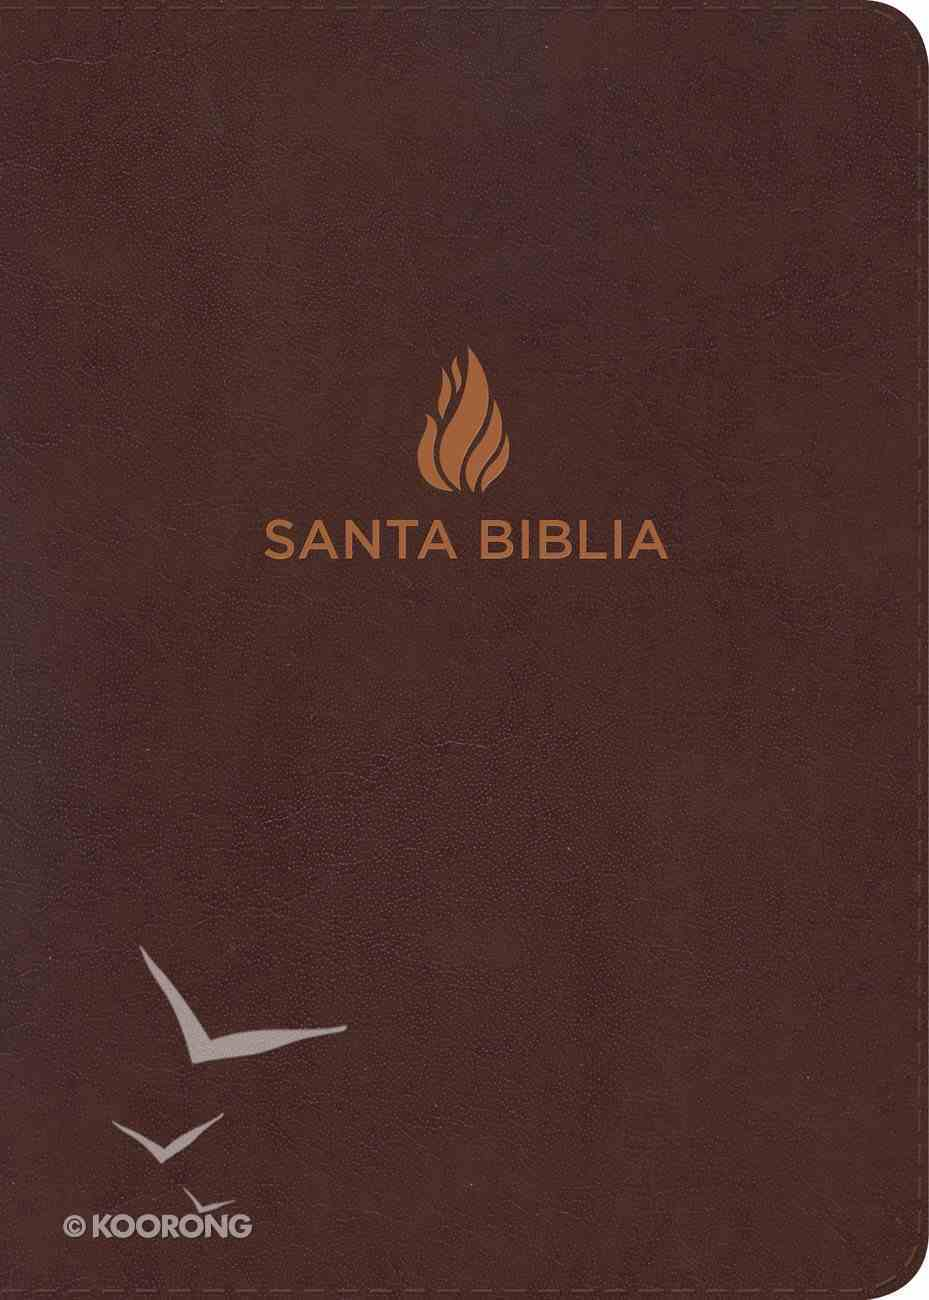 Rvr 1960 Biblia Letra Super Gigante Marron (Red Letter Edition) (Super Giant Print) Bonded Leather